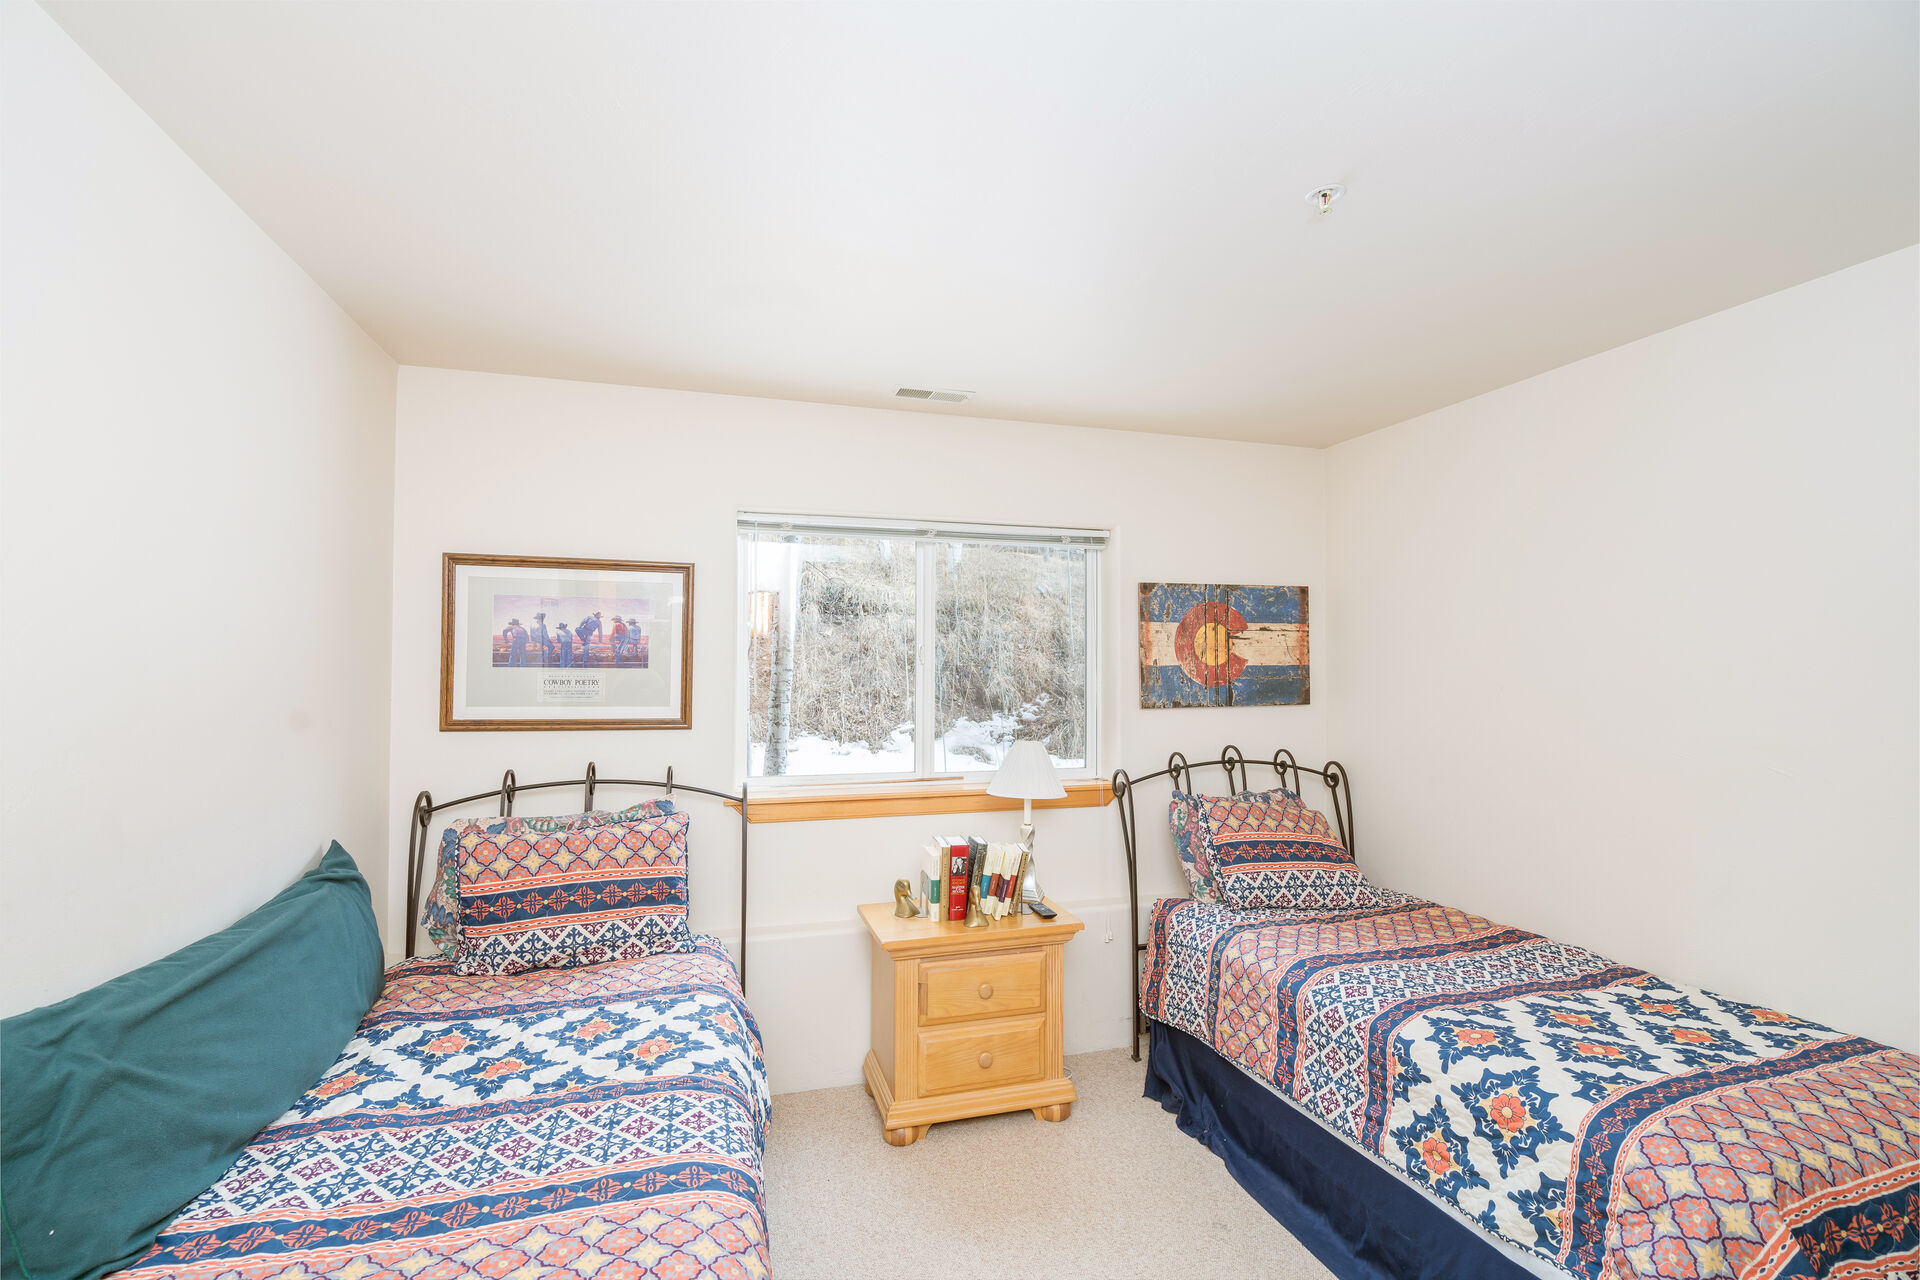 Bedroom with 2 Twin Beds and Views of Outside